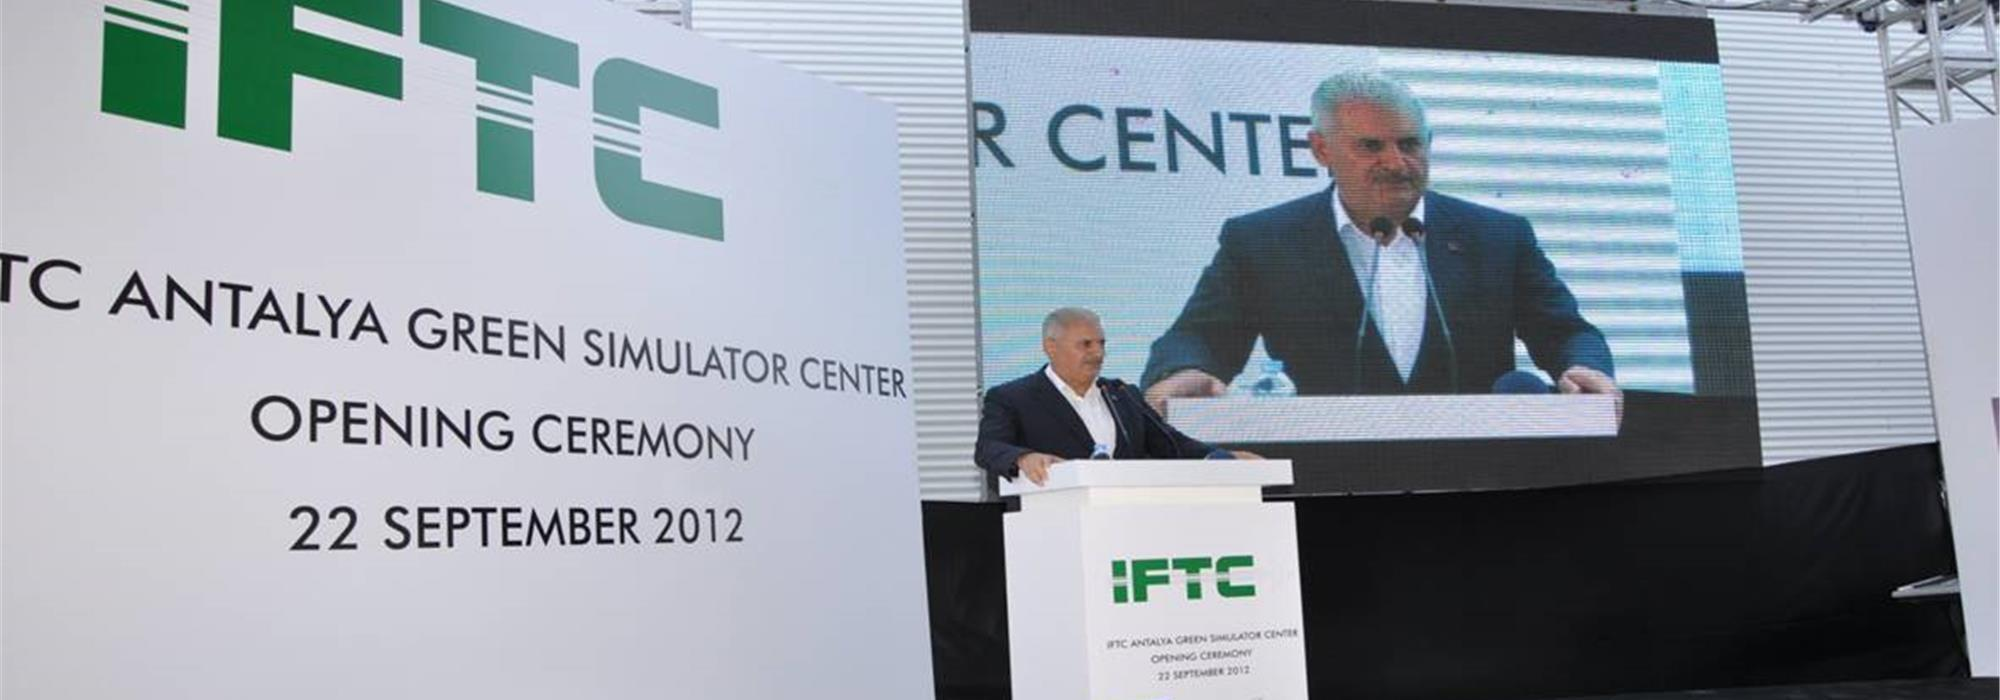 IFTC ANTALYA GREEN SIMULATOR CENTRE